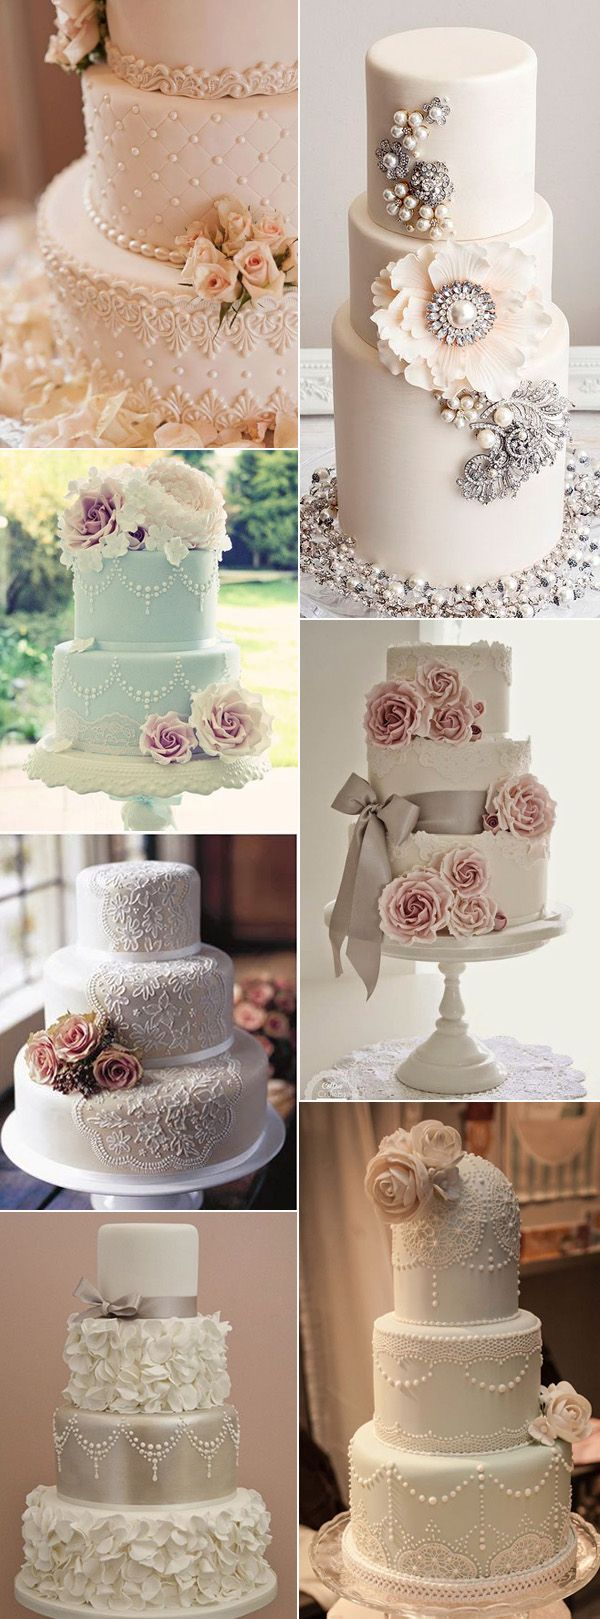 vintage wedding cakes for 2017 trends